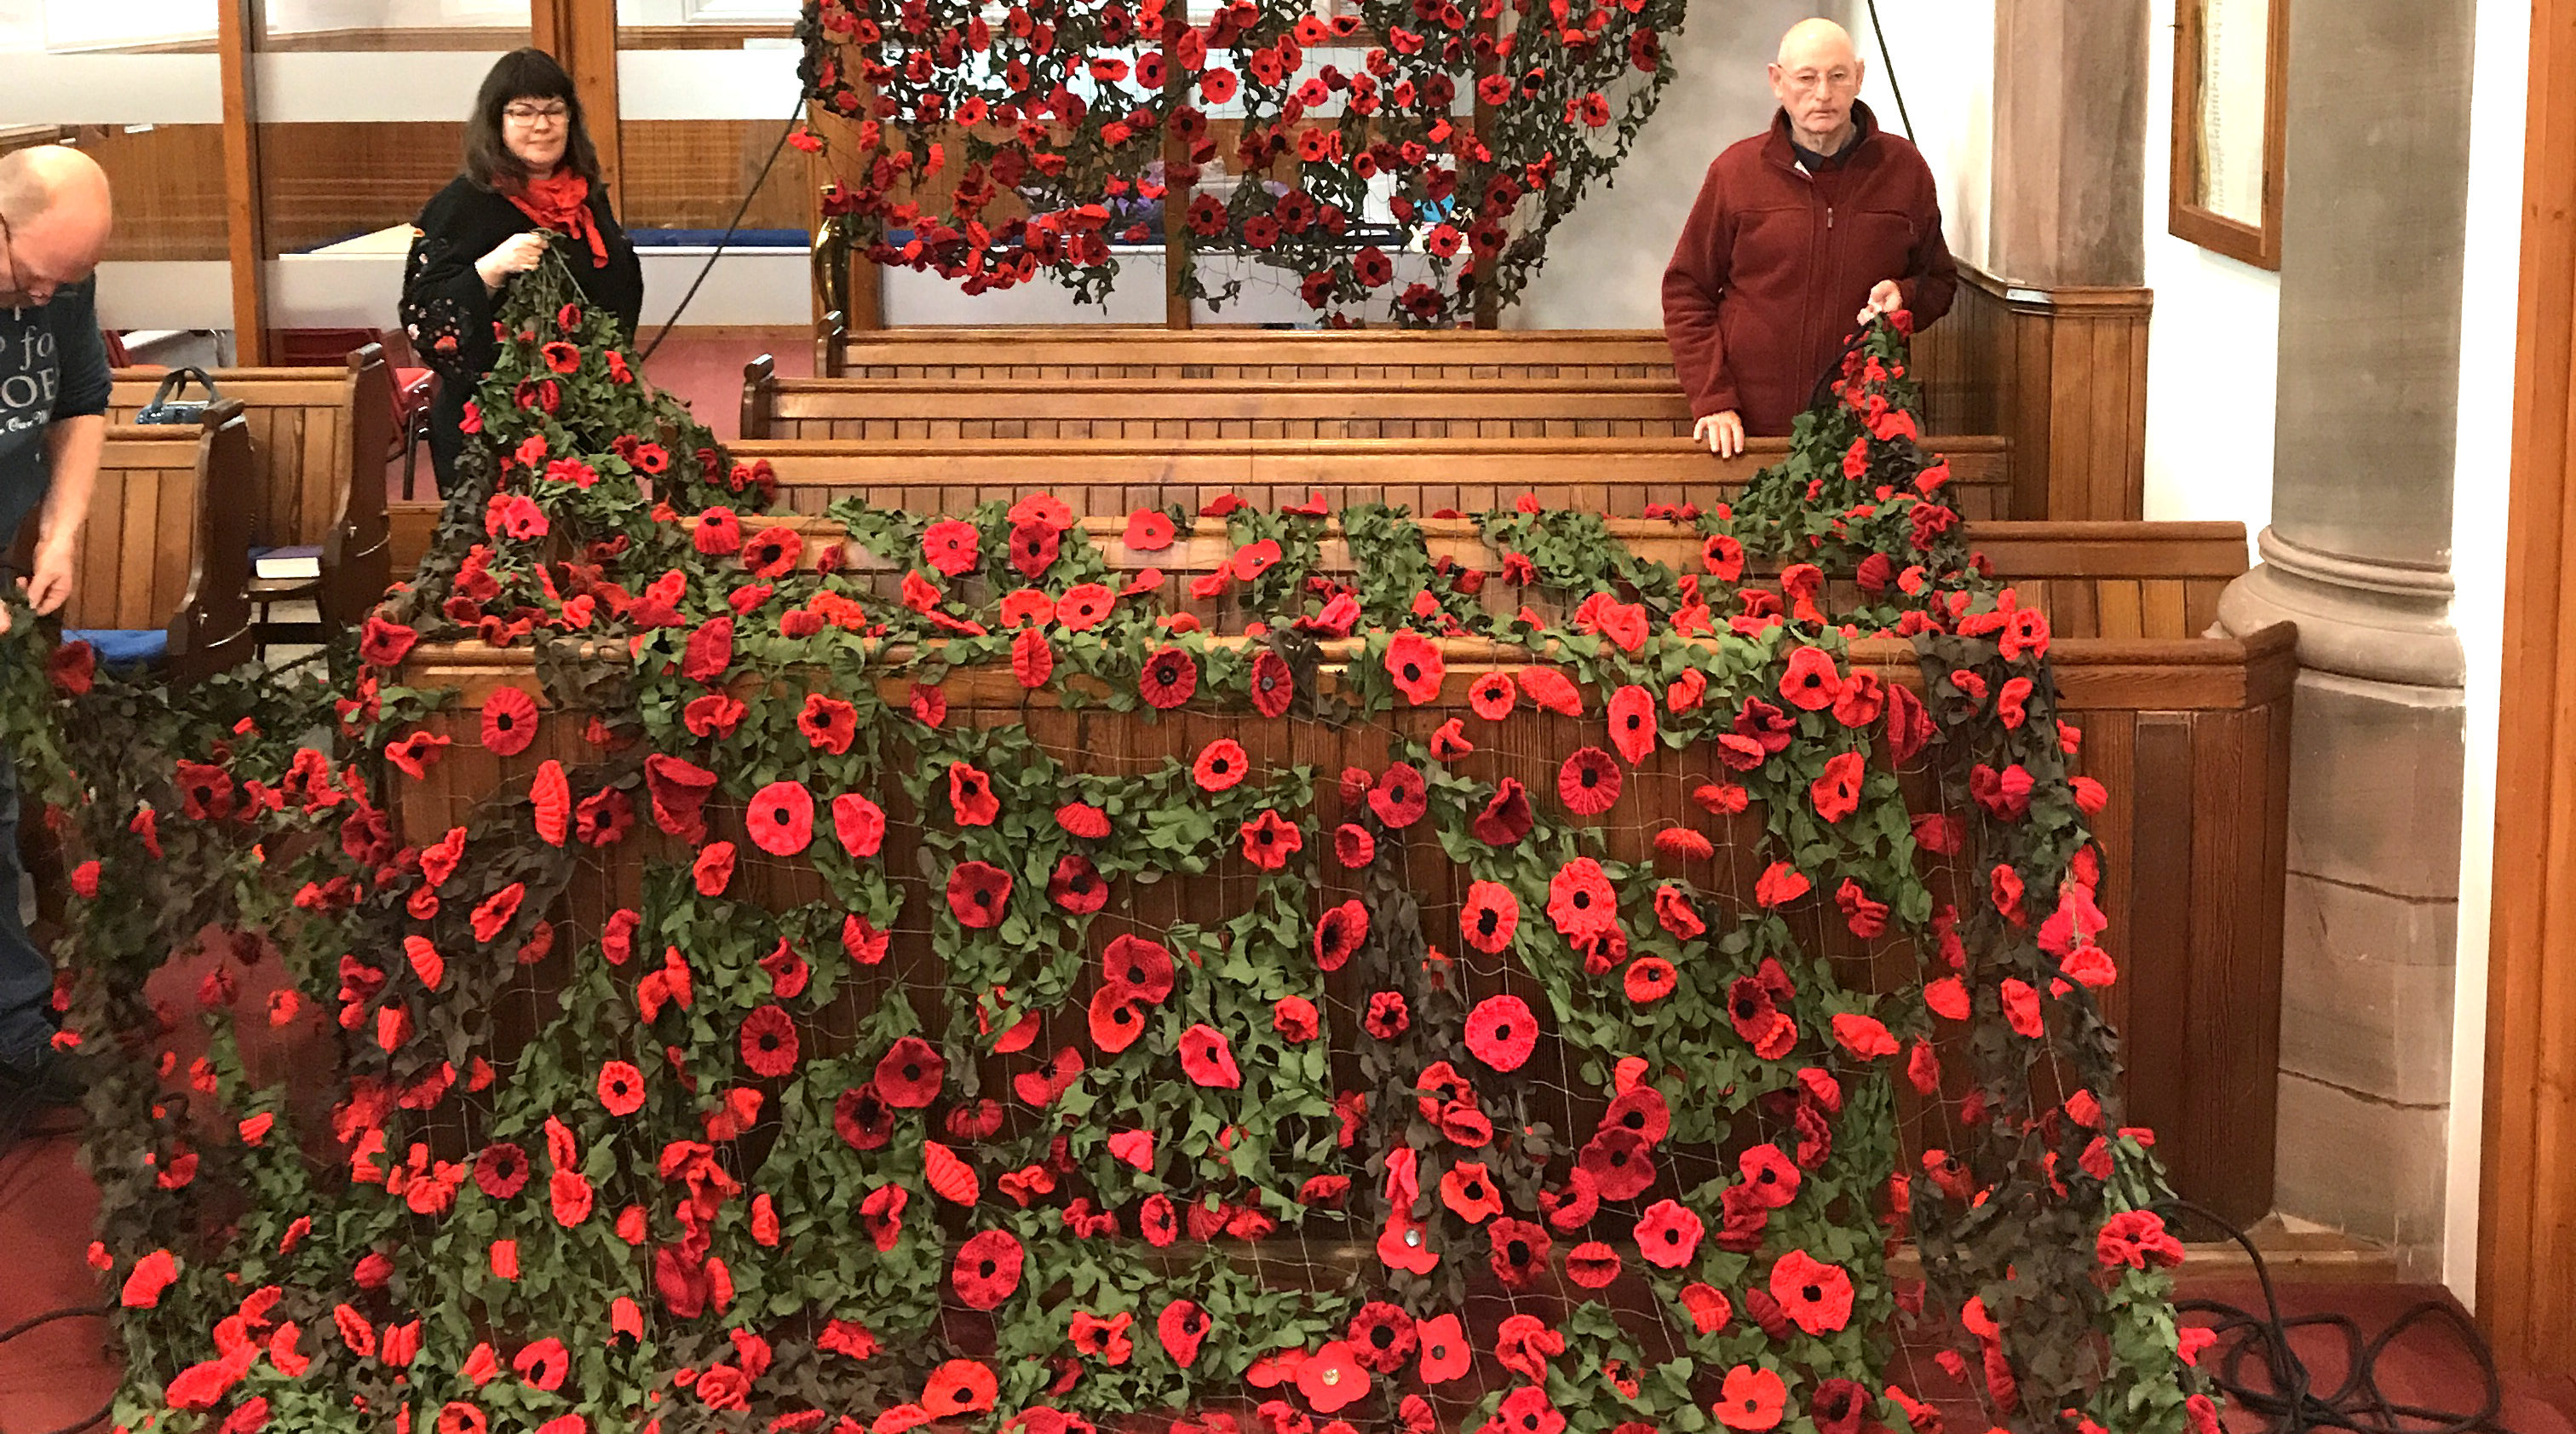 Working on the poppy display inside the Kirk